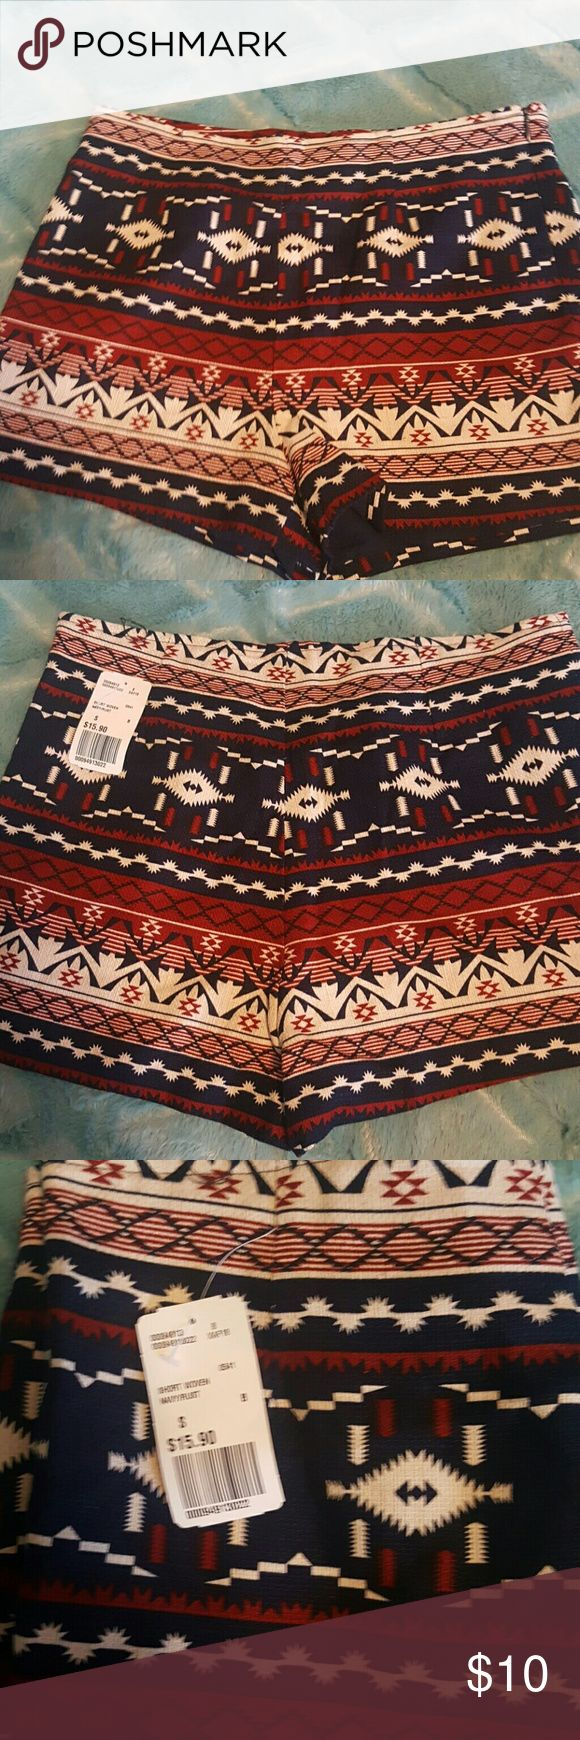 *NWT*!! FOREVER 21 AZTEC PRINT SHORTS Adorable shorts!! Brand new with tags attached. Size small. High waisted style. Zipper on side. Perfect for the 4th of July or just to show your patriotic side during the Summer!! Bundle to $ave!!! Forever 21 Shorts